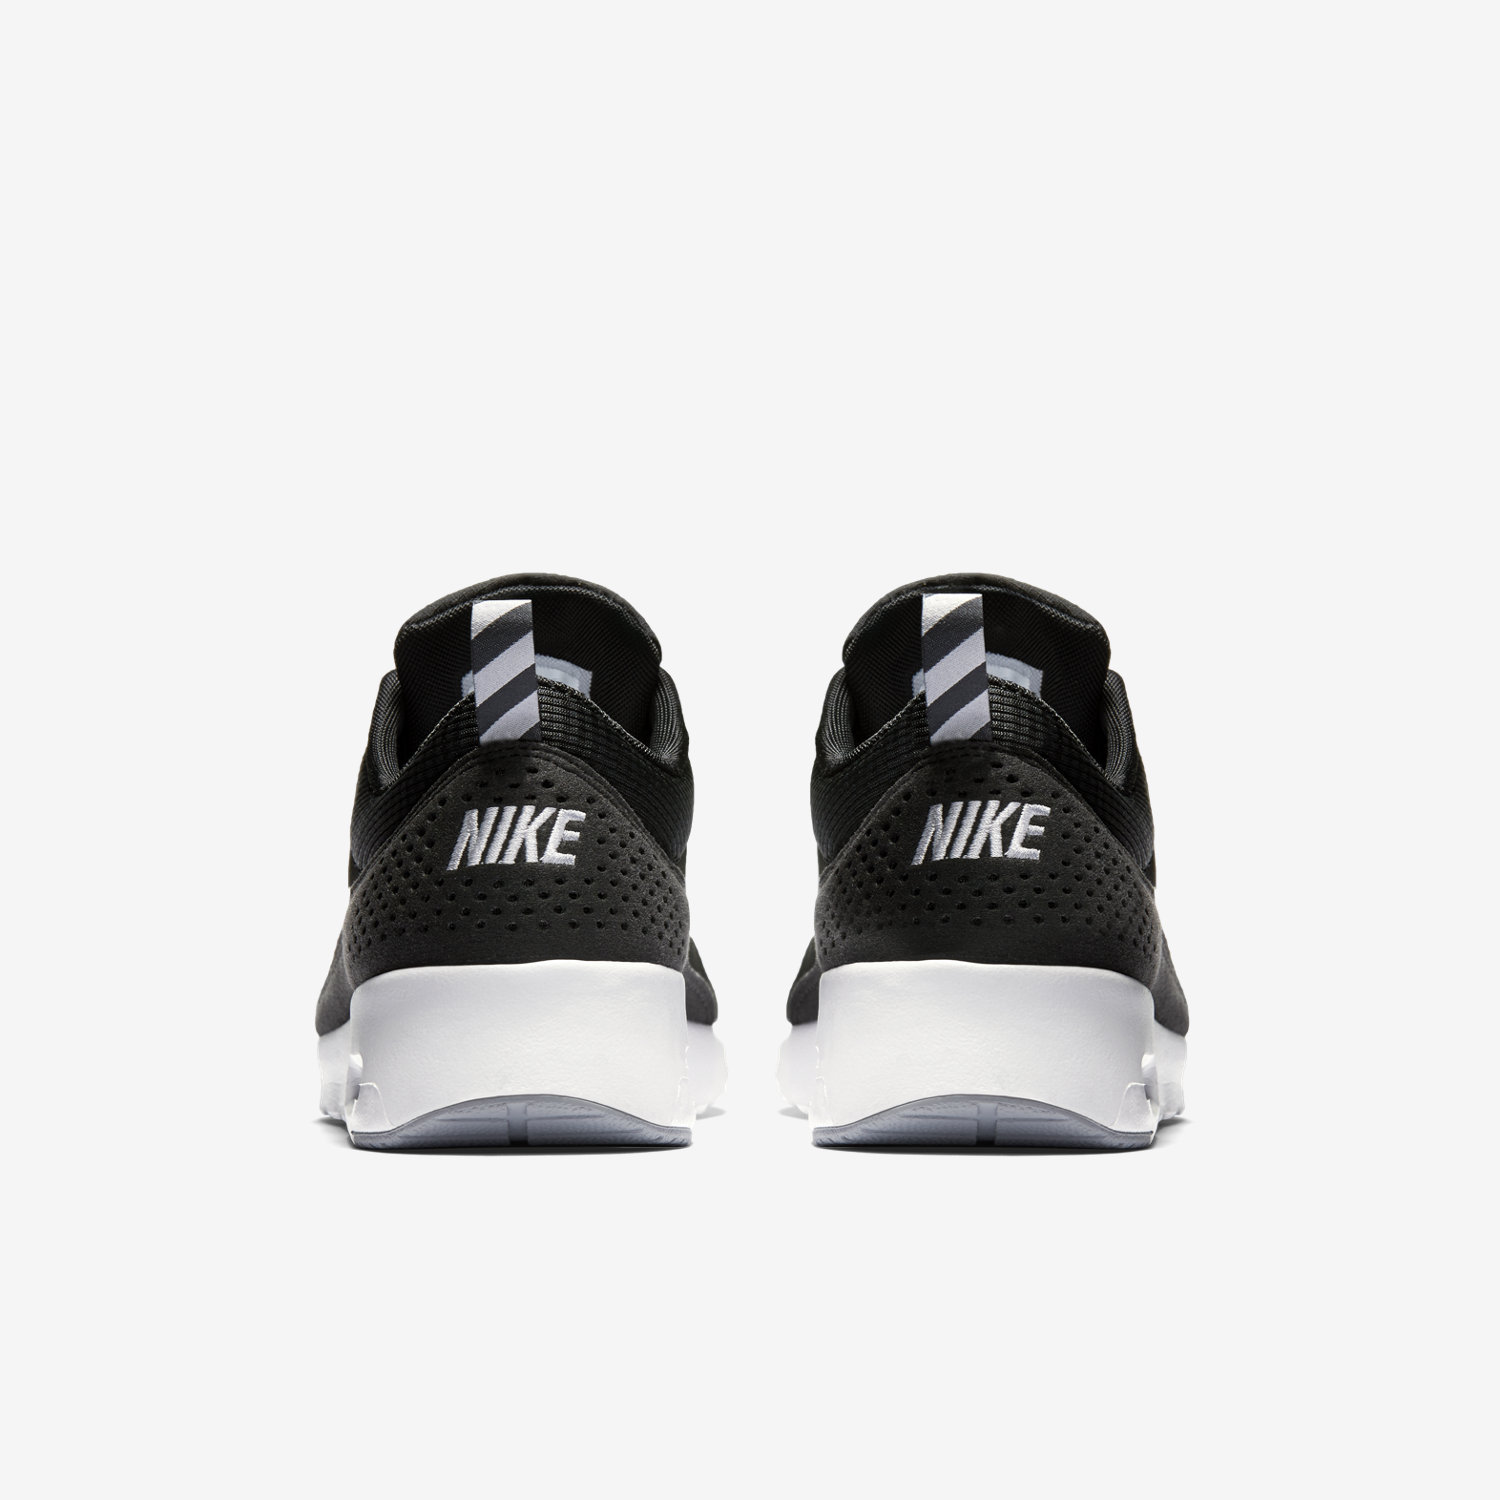 nike air max thea femme noir et blanche salomon chaussures de snowboard. Black Bedroom Furniture Sets. Home Design Ideas